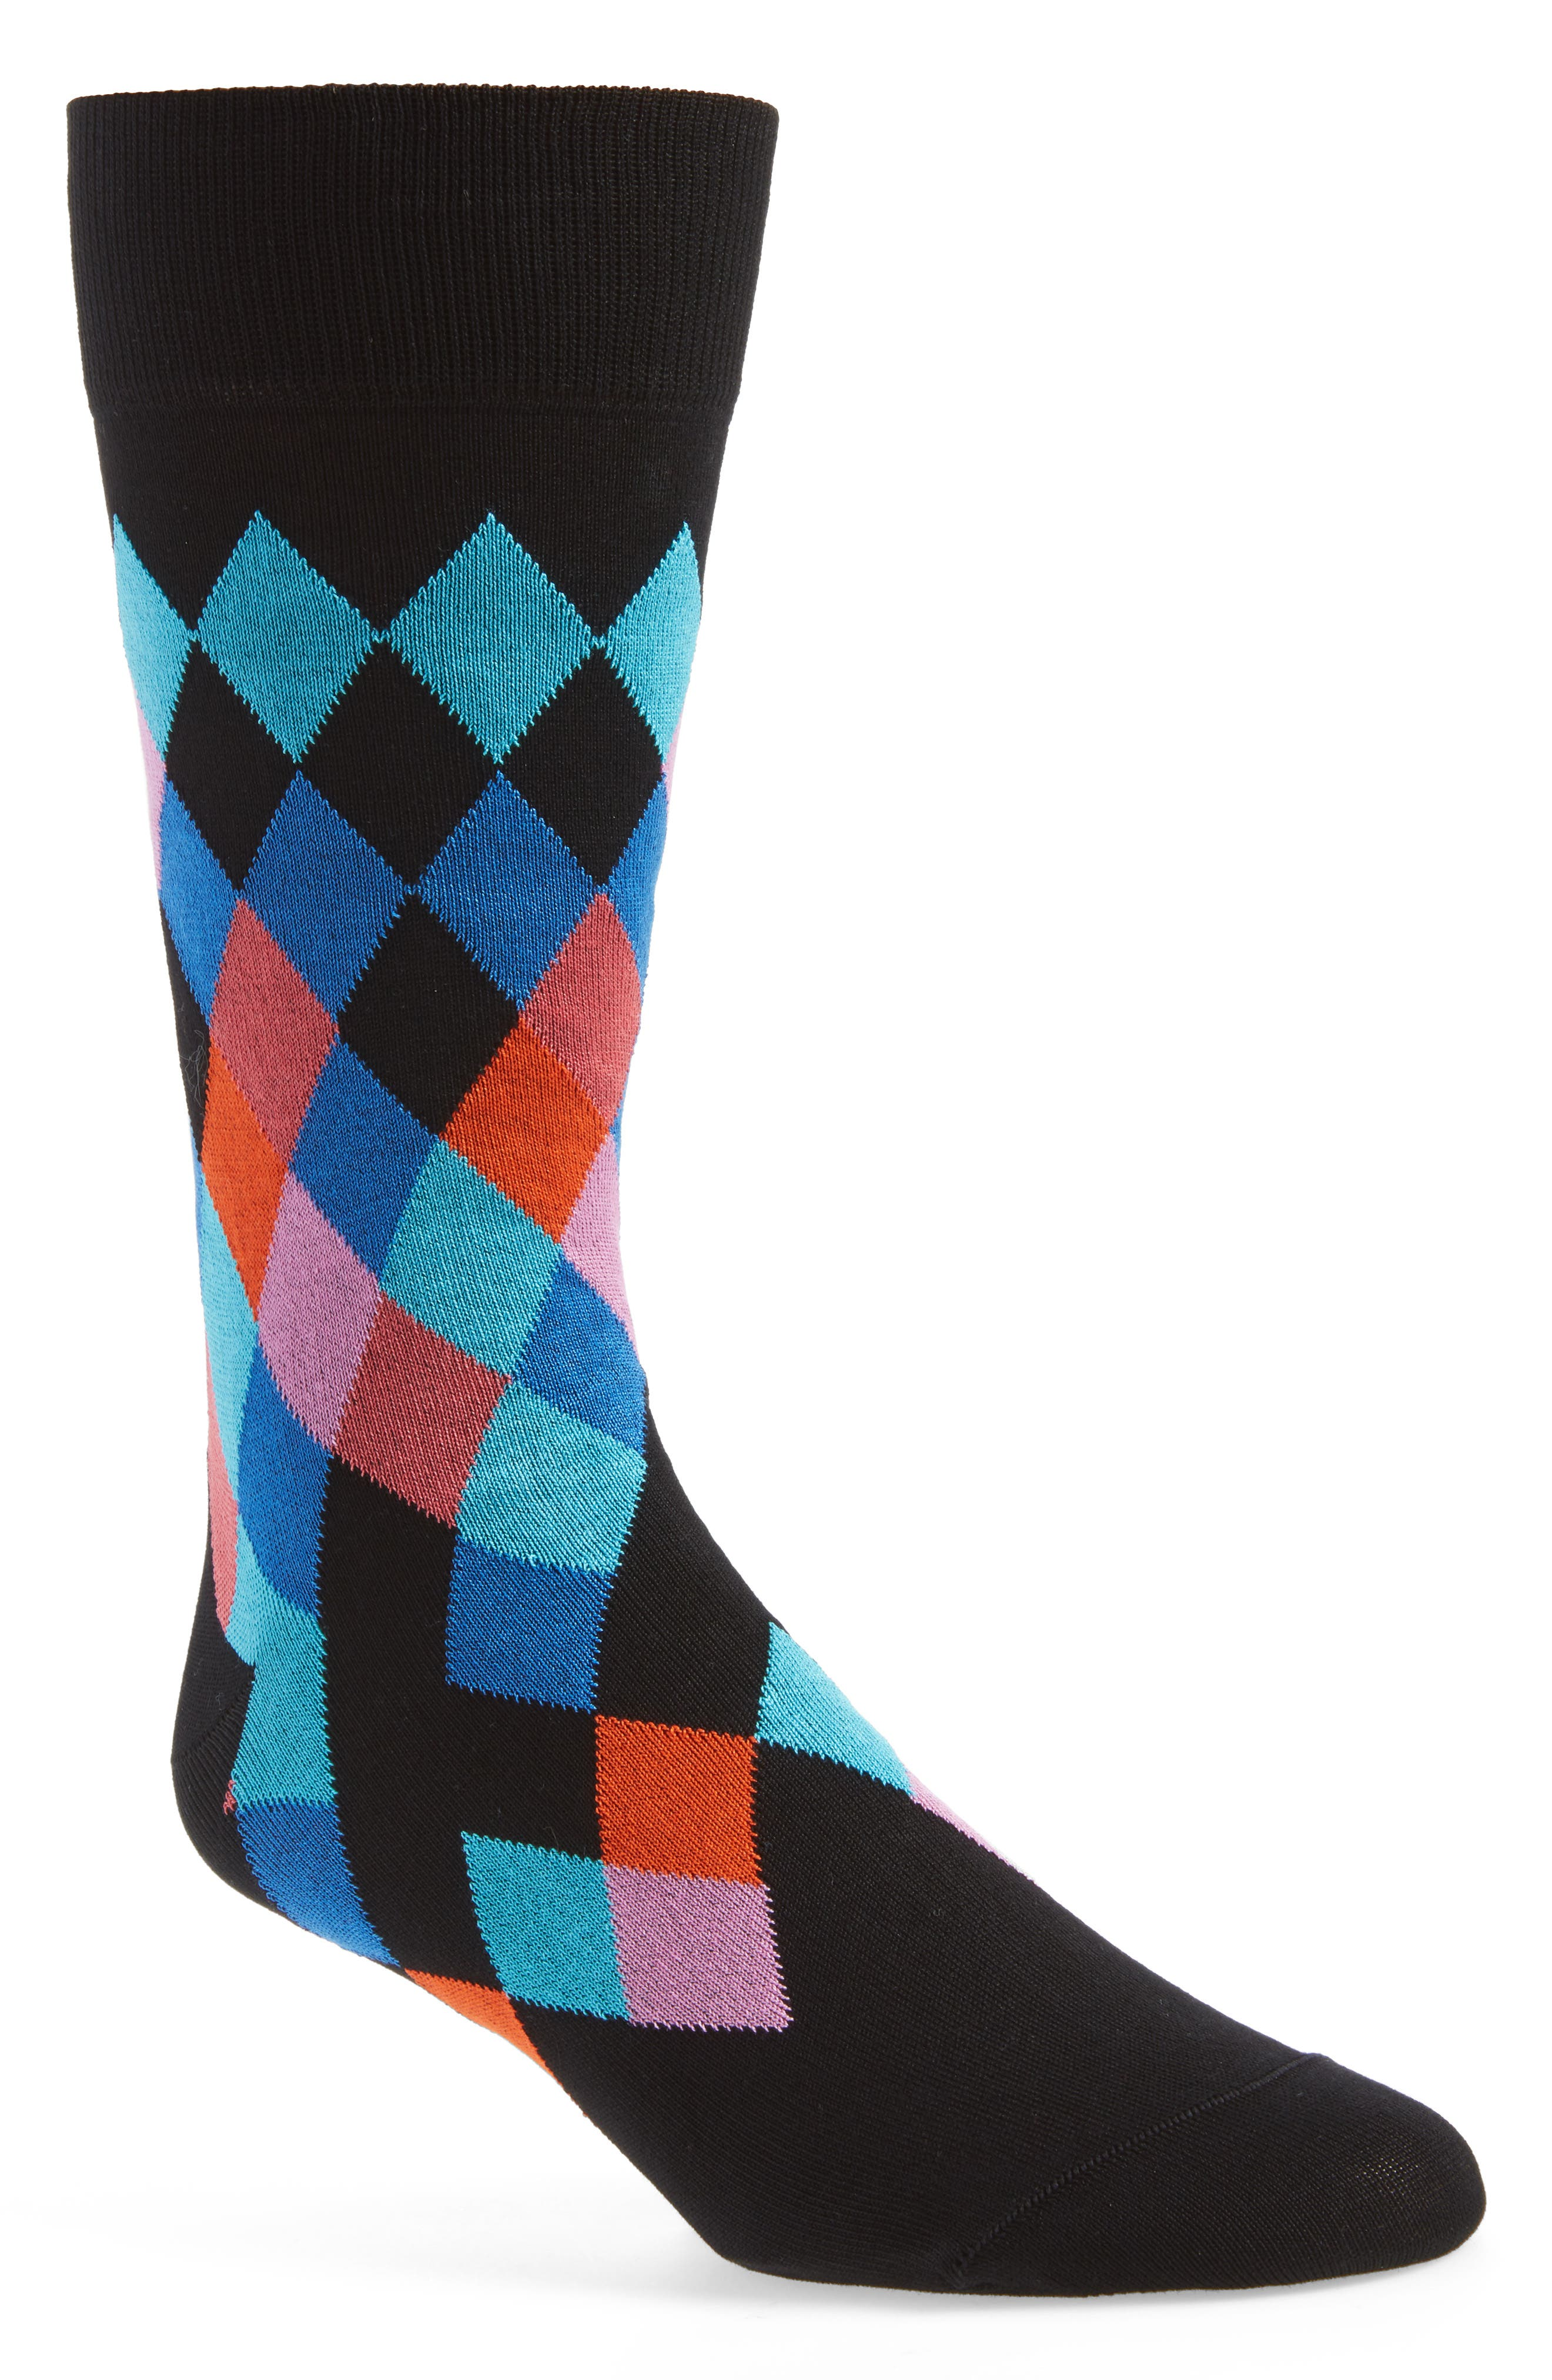 Cotton Blend Socks,                         Main,                         color, 410